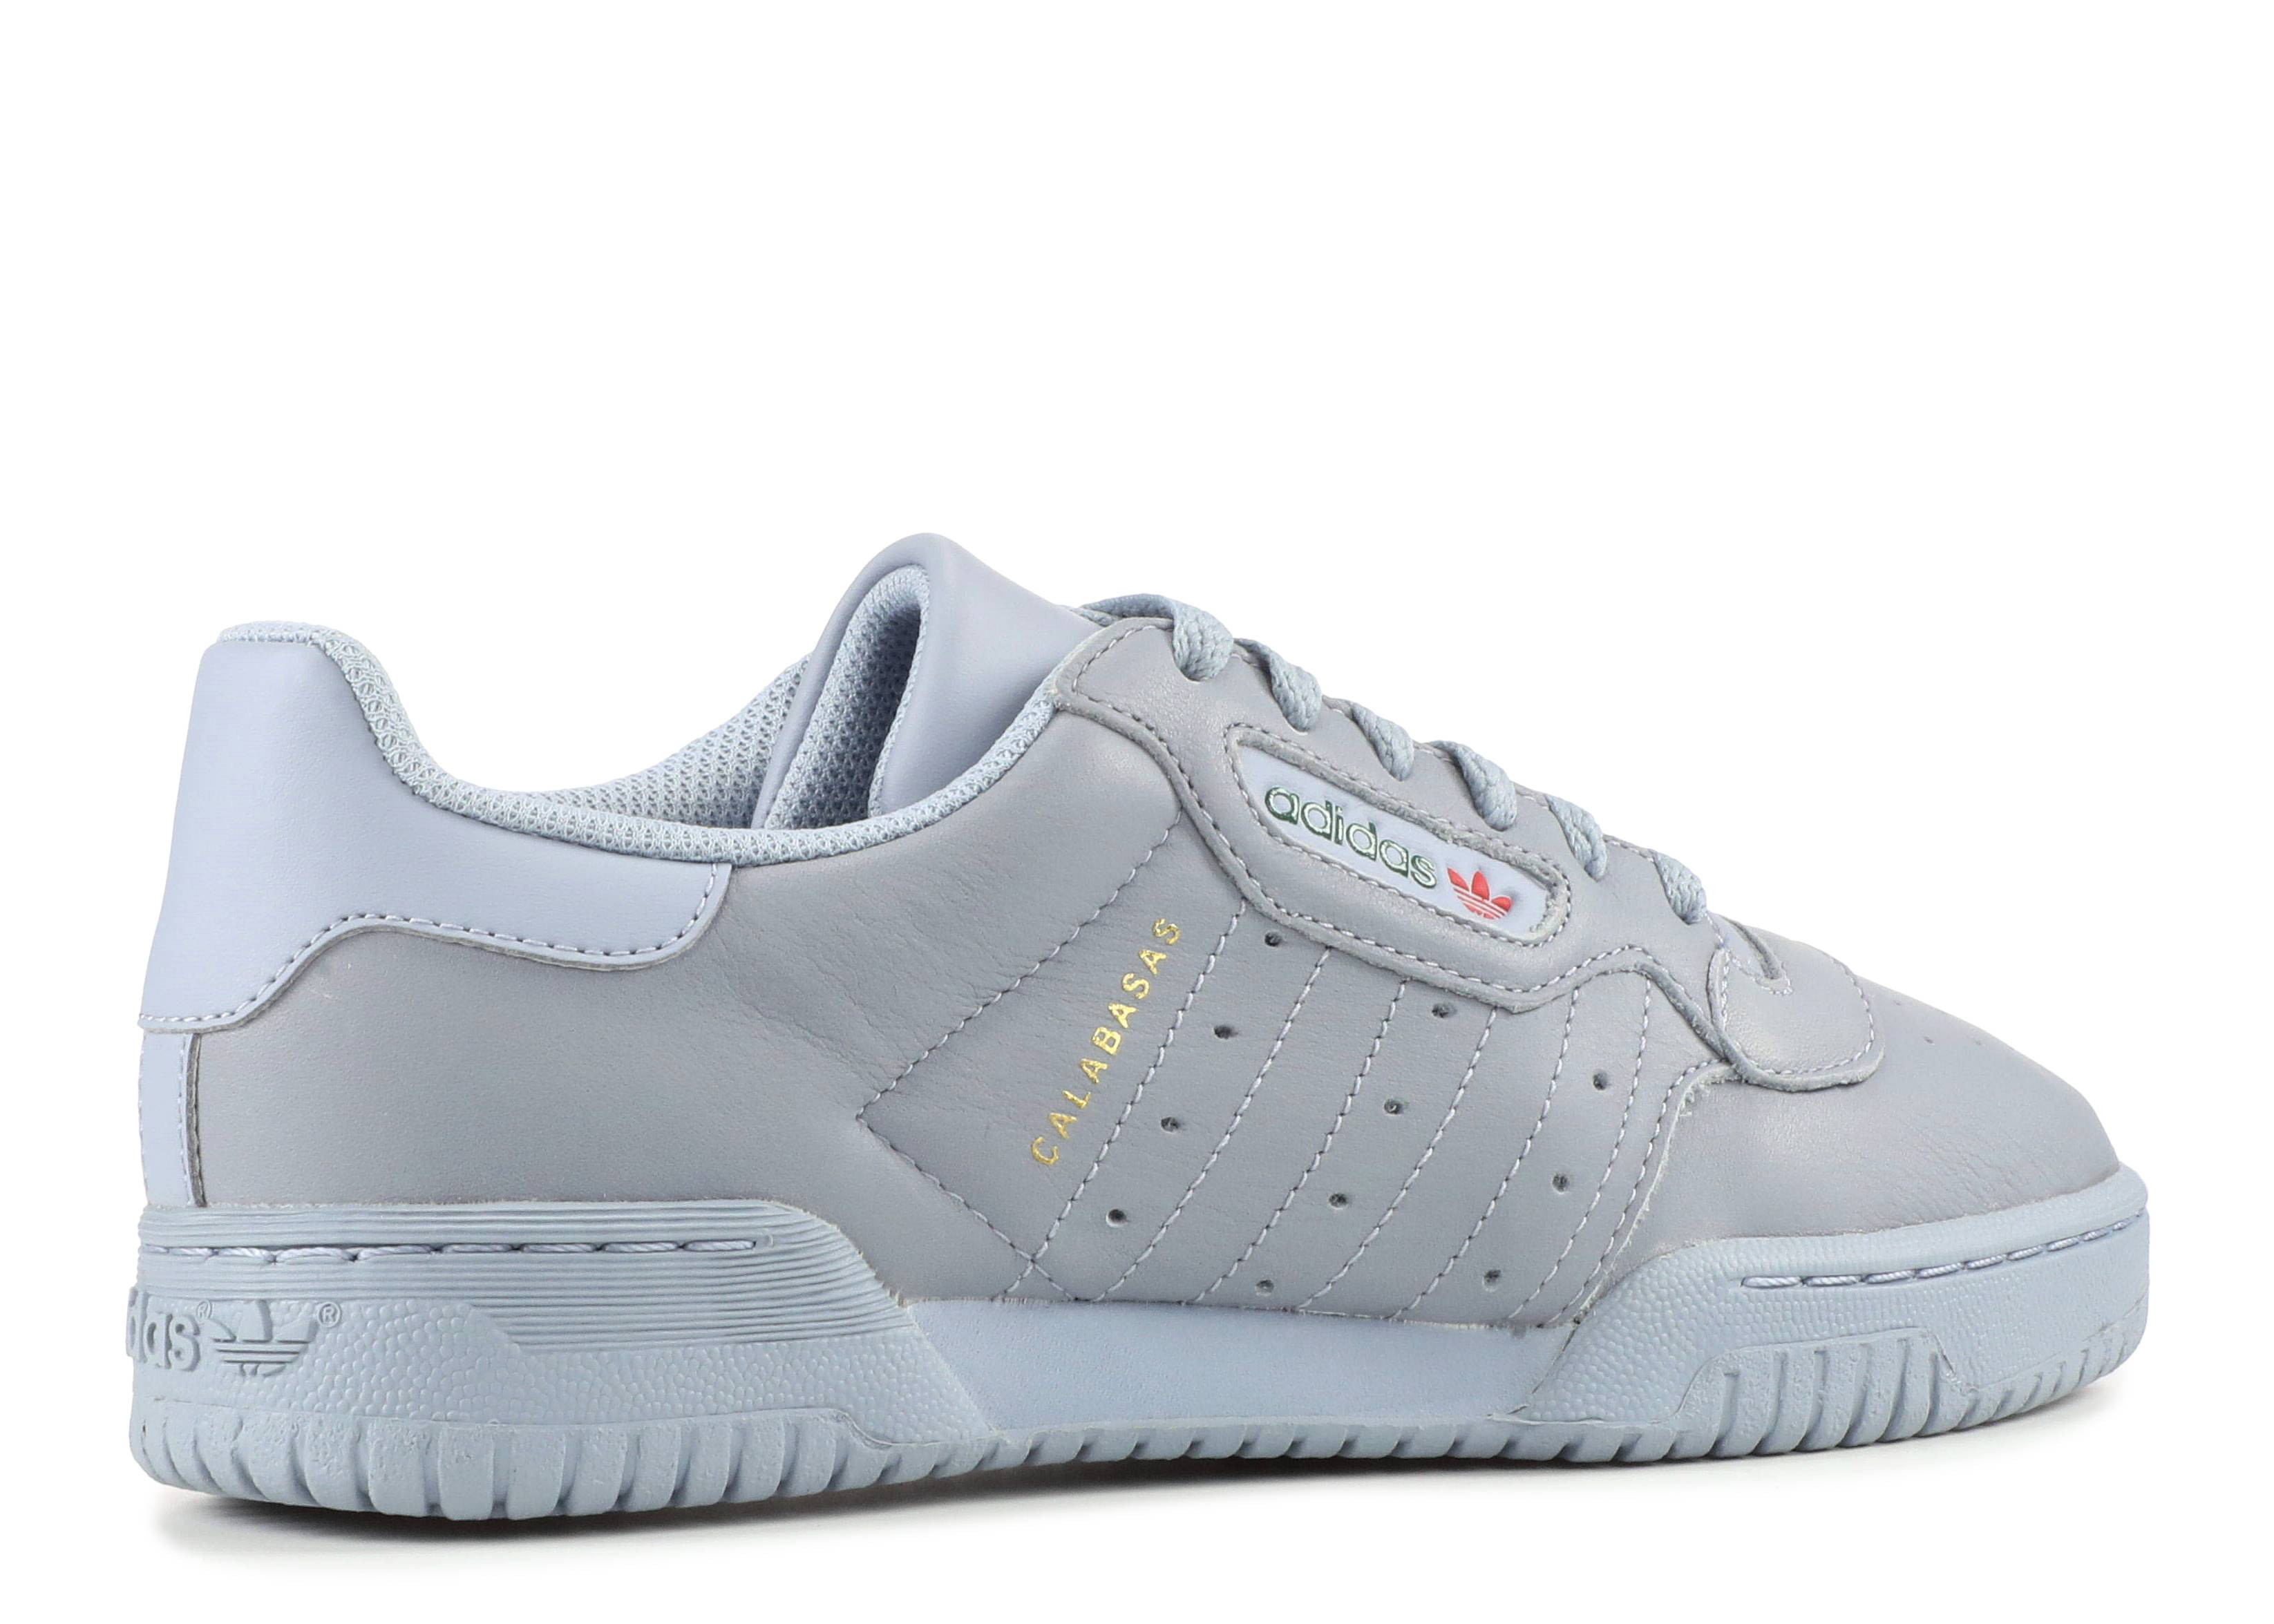 28ad83d7bad485 Yeezy Powerphase